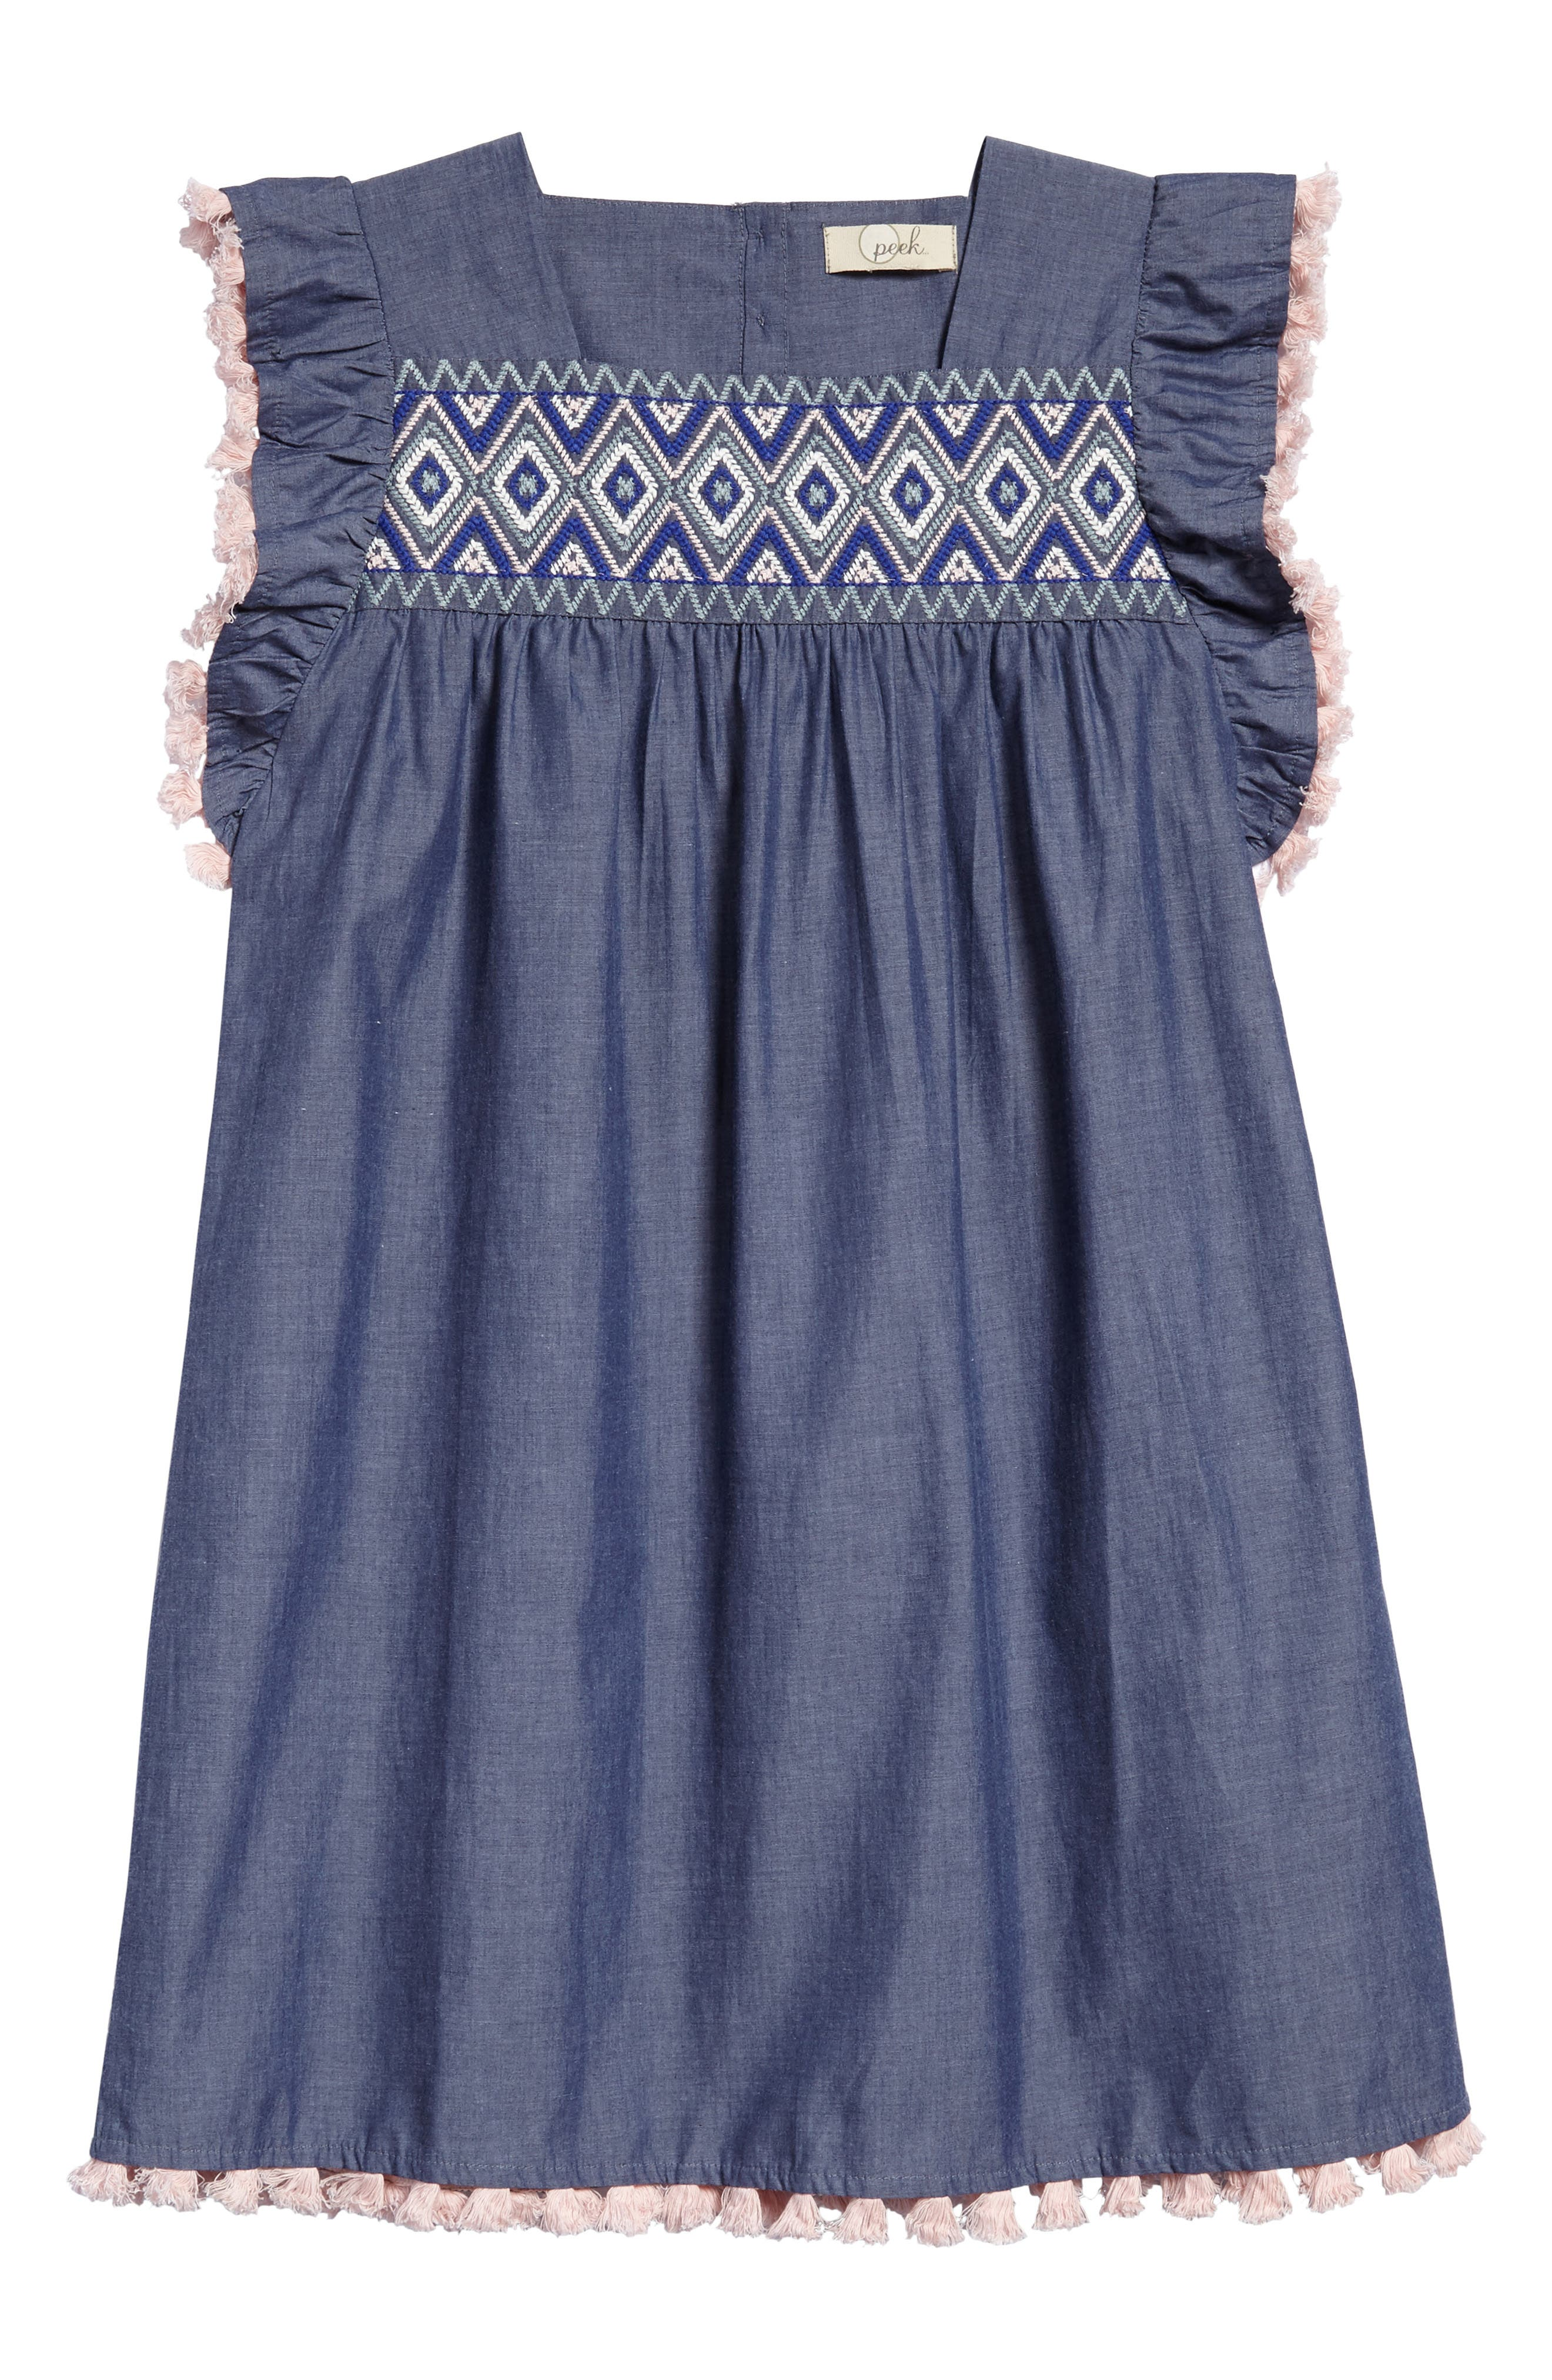 Peek Sophia Embroidered Dress (Toddler Girls, Little Girls & Big Girls)